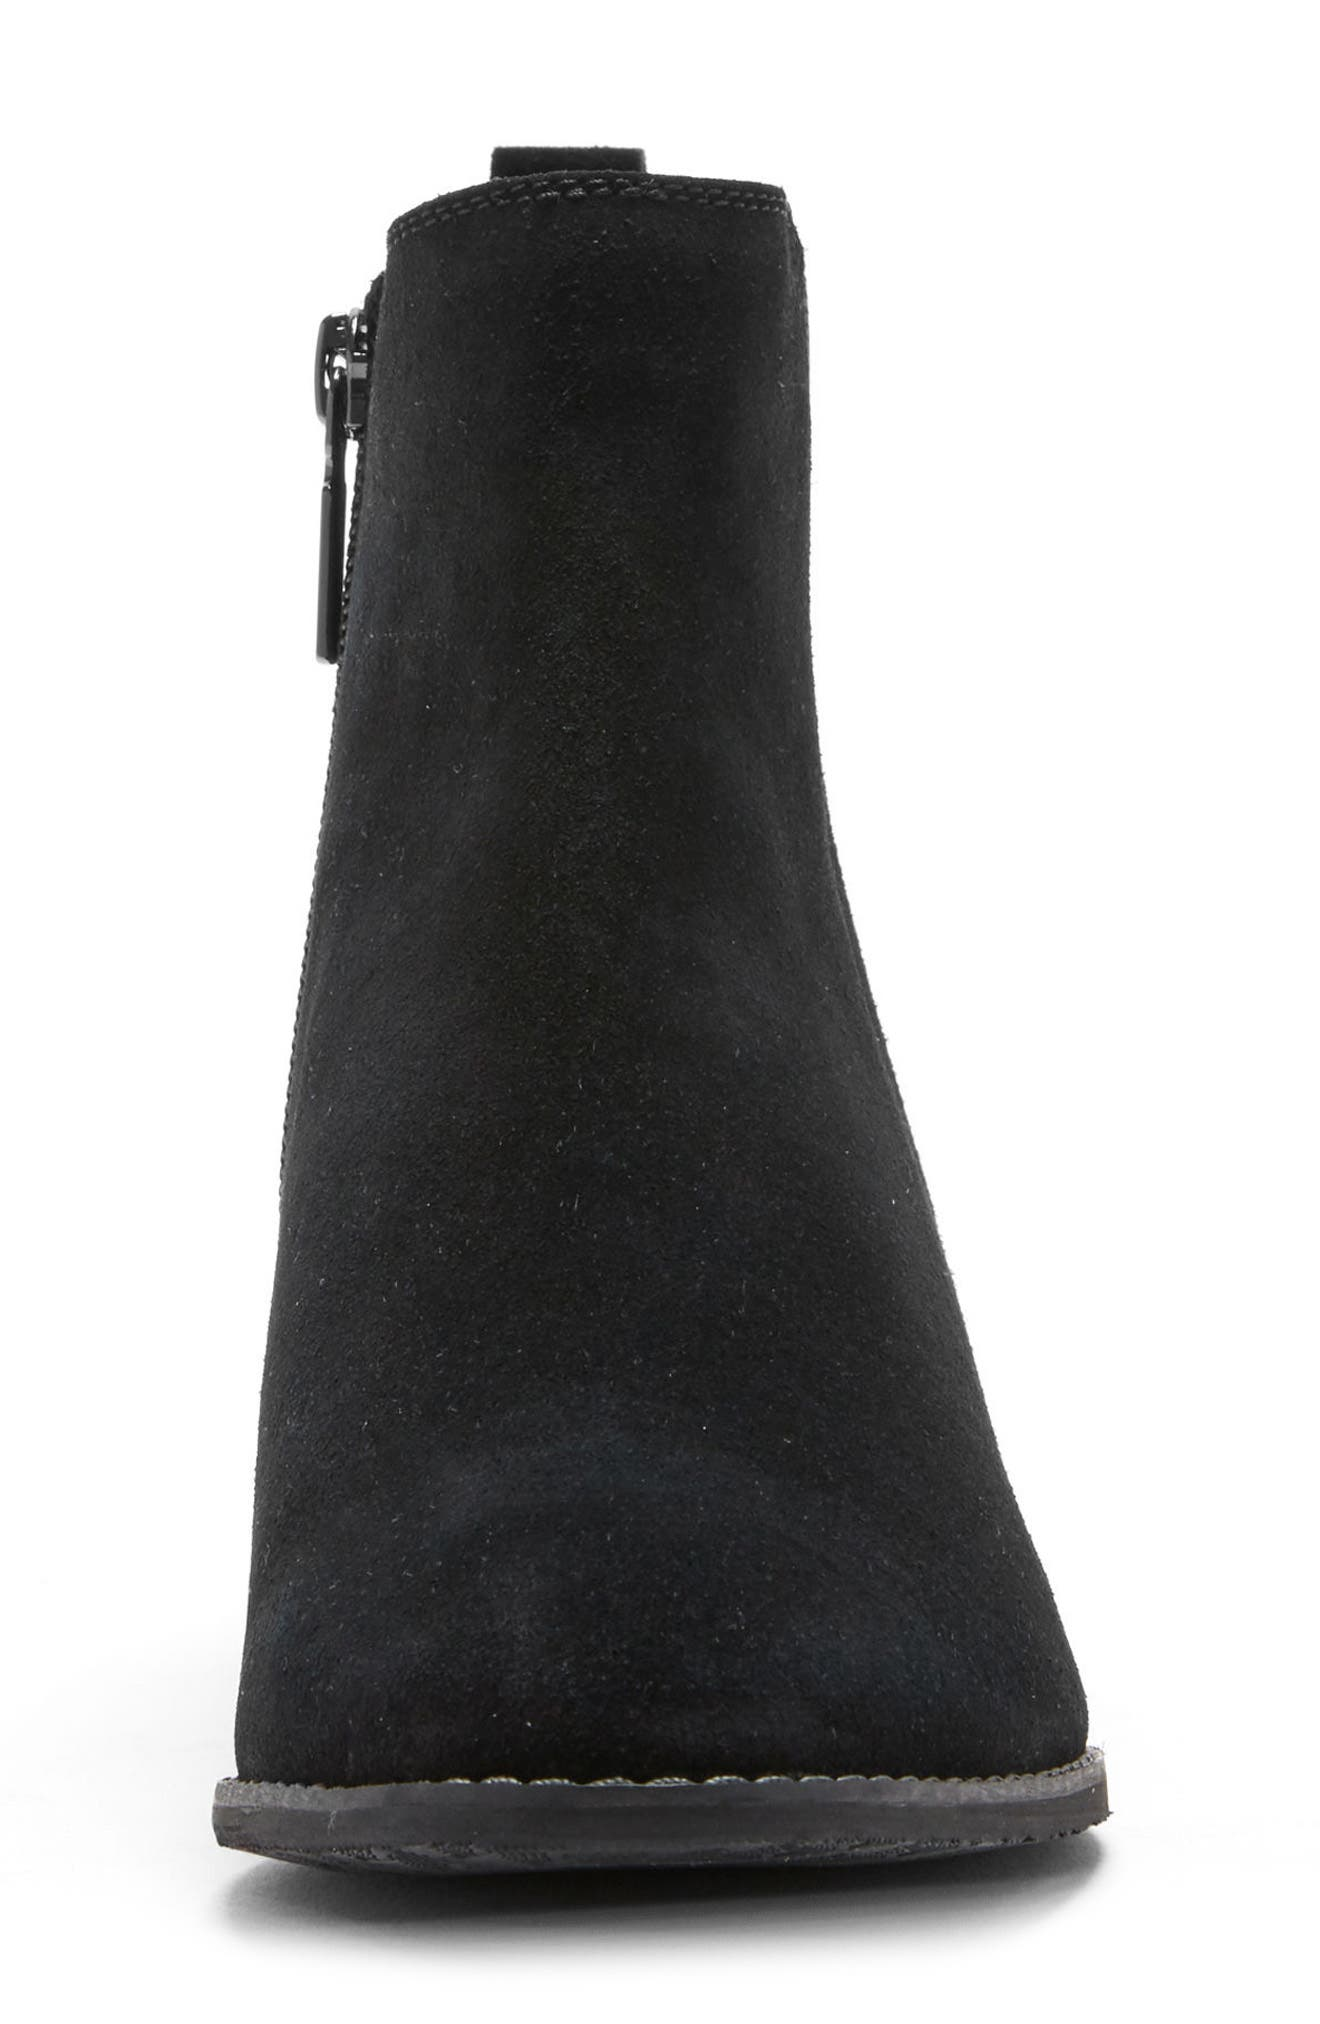 Loxx Waterproof Bootie,                             Alternate thumbnail 4, color,                             006